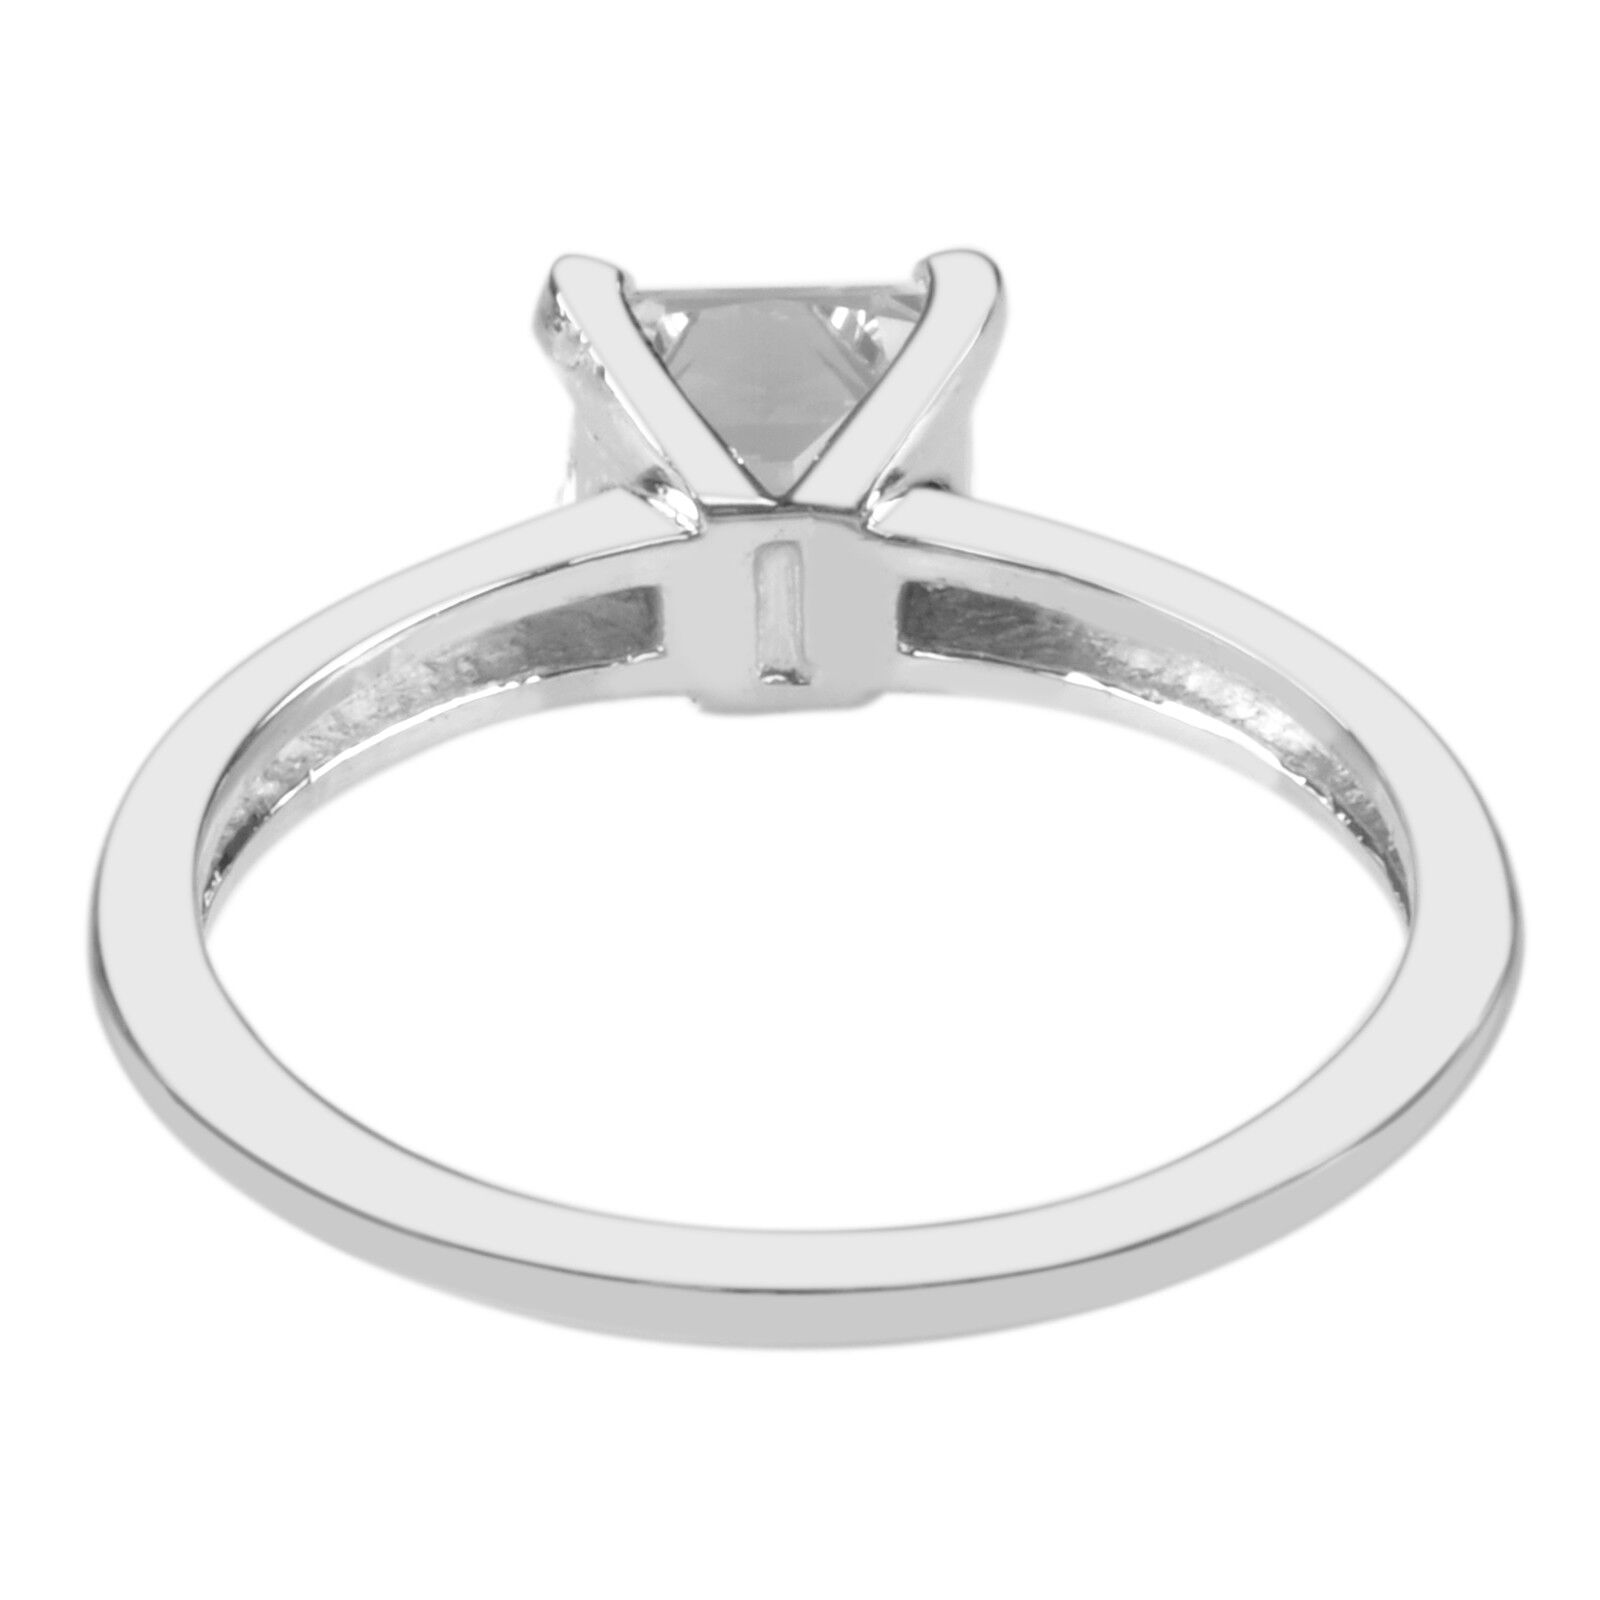 1.85 Carat Princess Shape Solitaire Women's Wedding Ring - 925 Sterling Silver 1